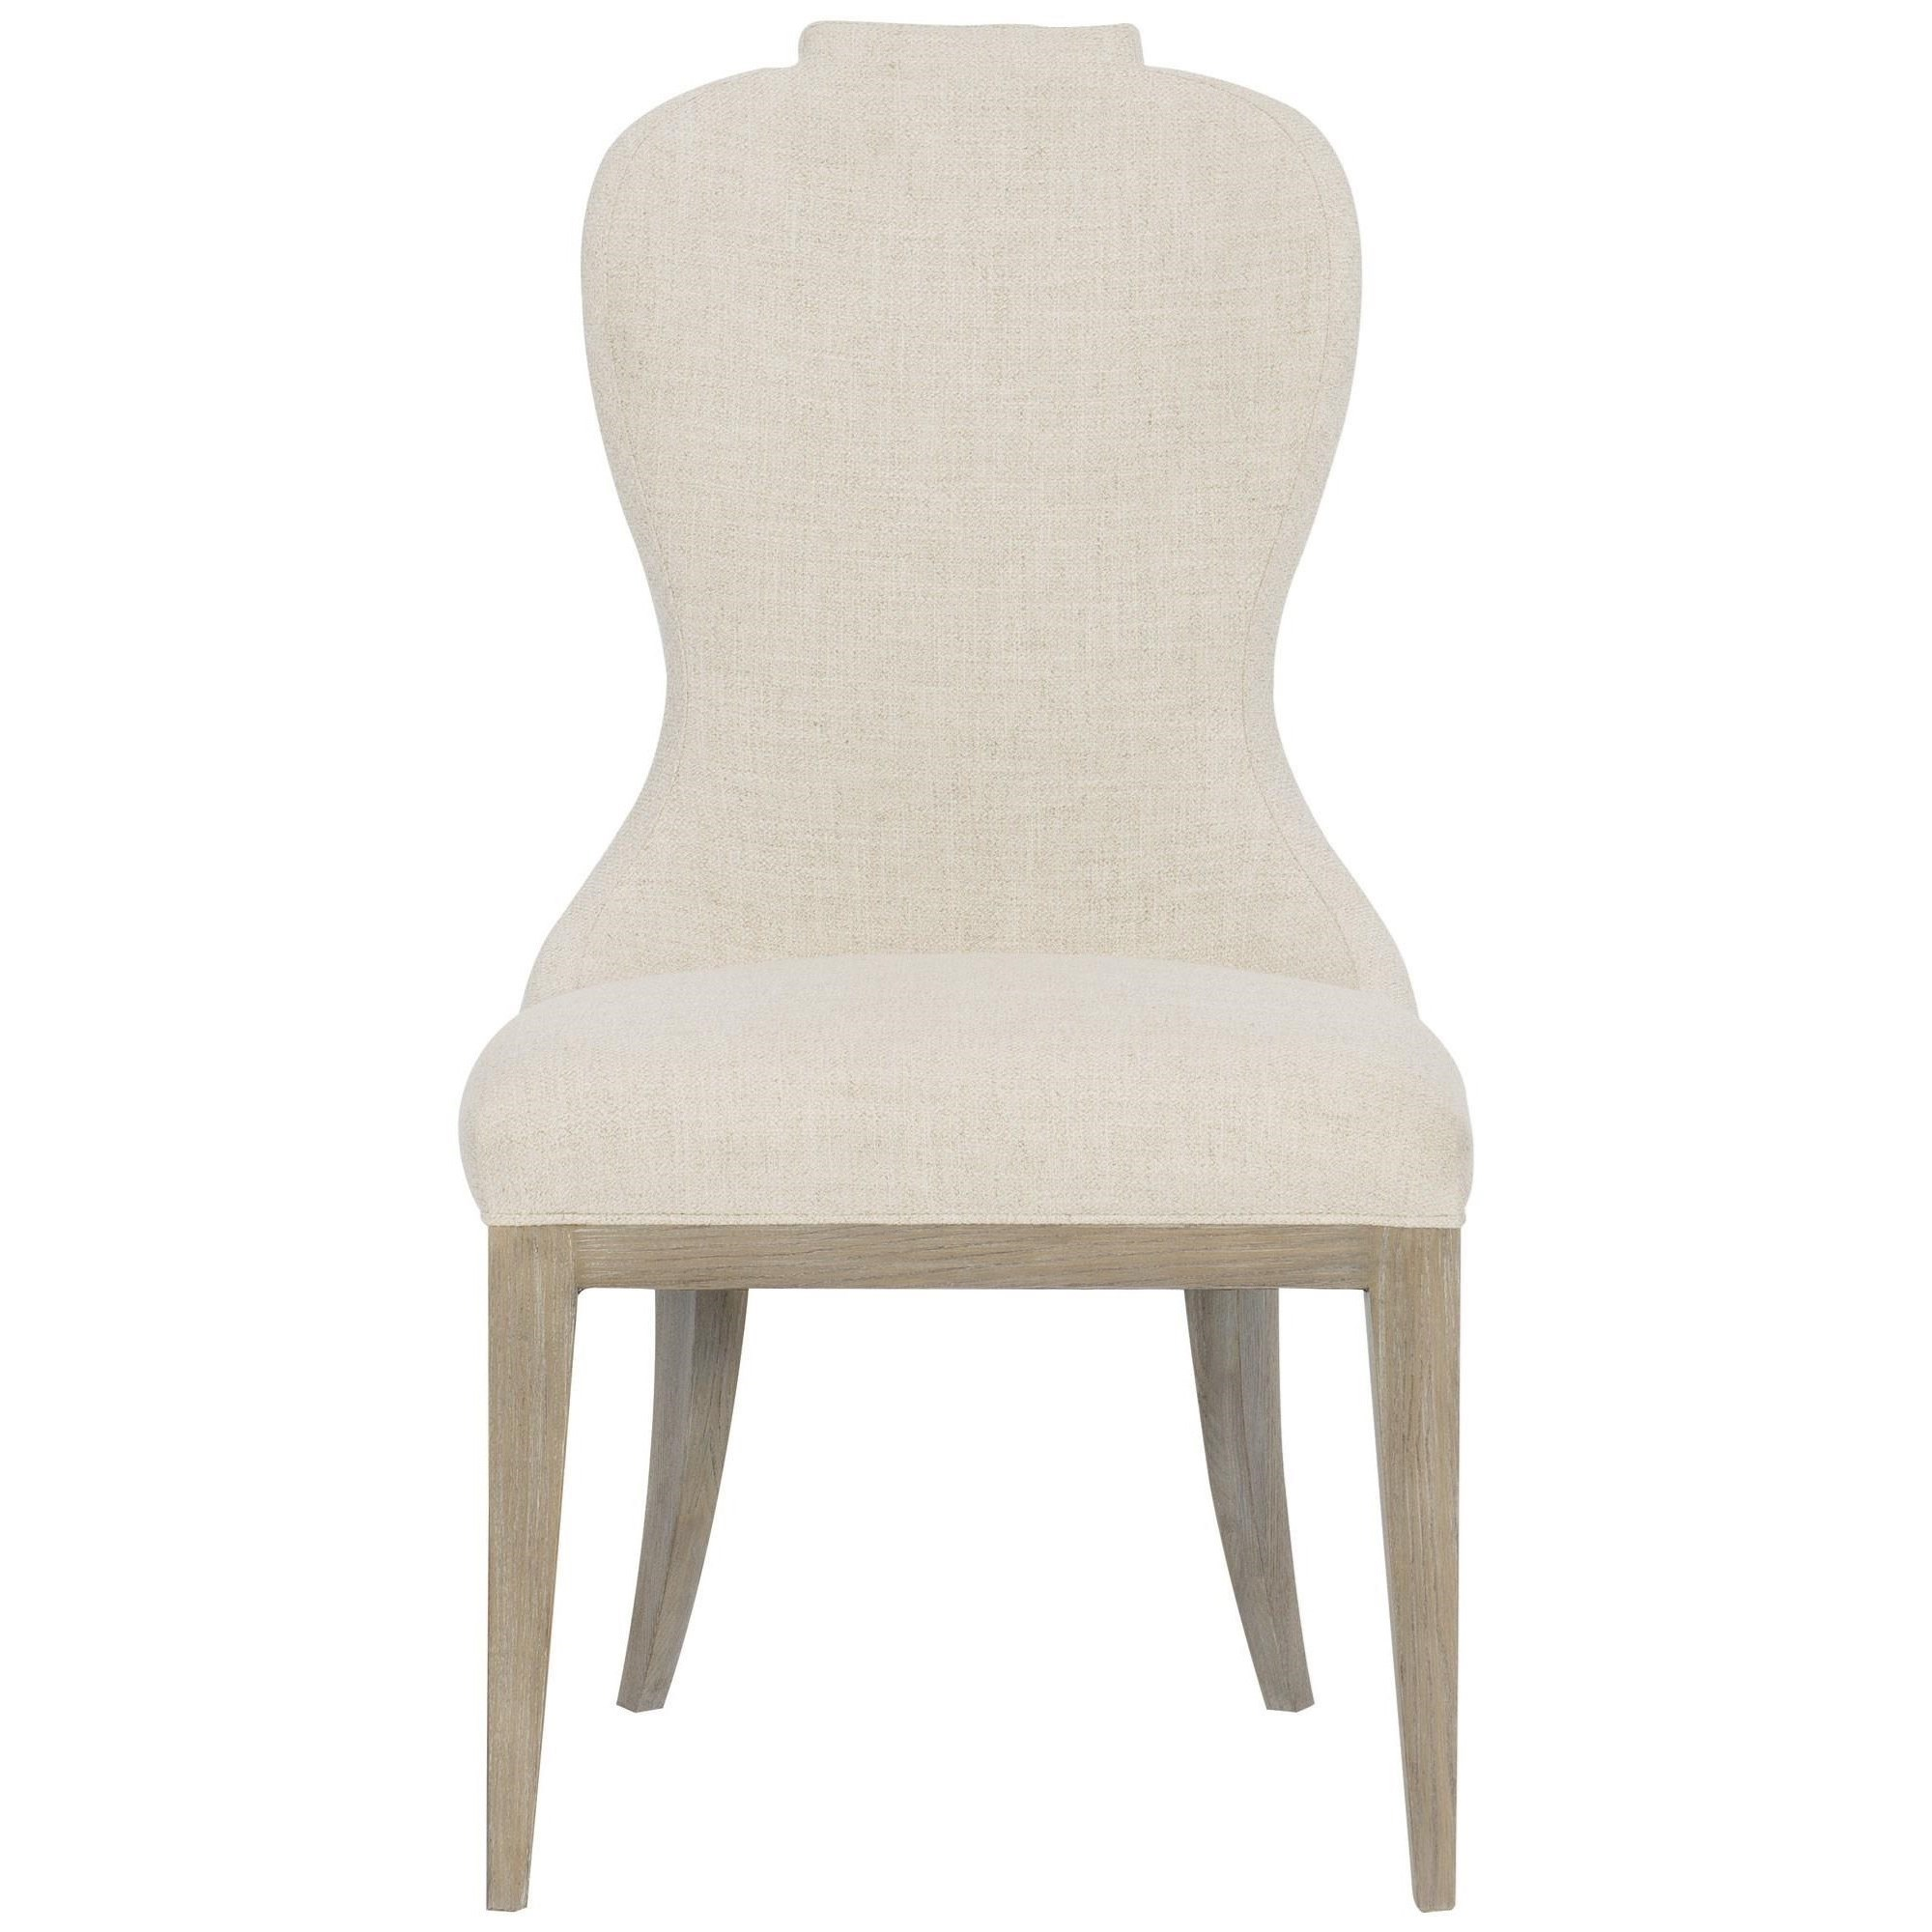 Santa Barbara Customizable Upholstered Side Chair by Bernhardt at Baer's Furniture